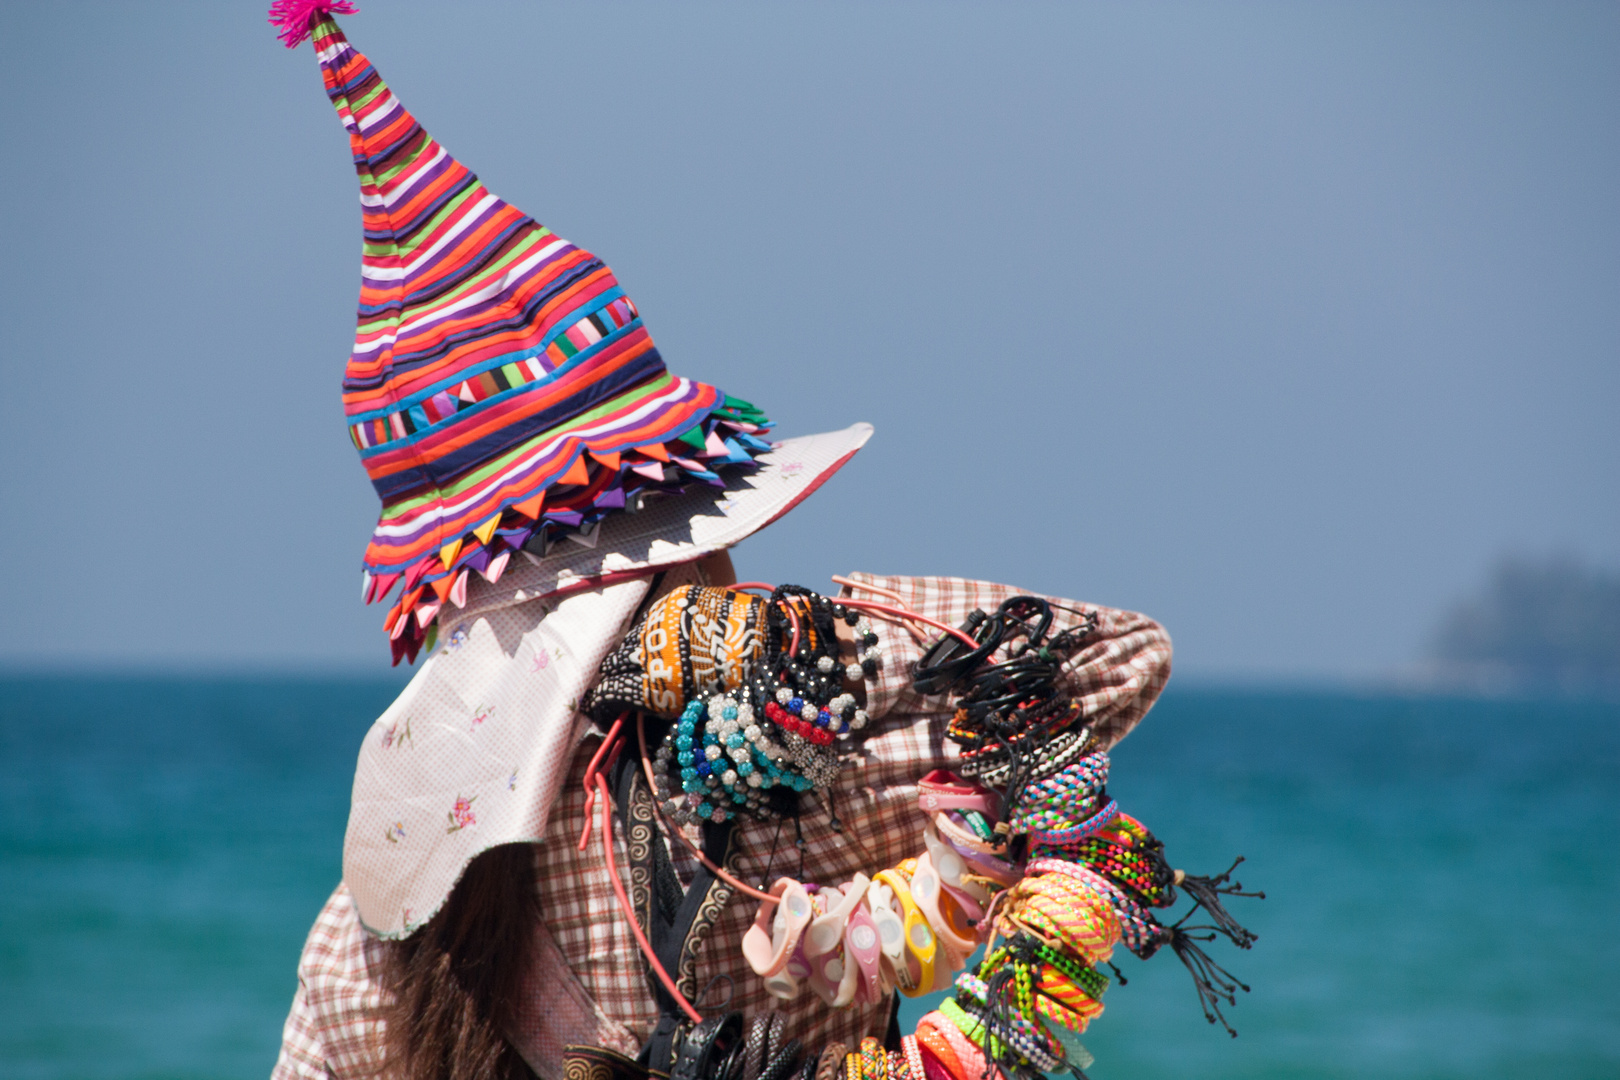 Colourful Lady at the beach